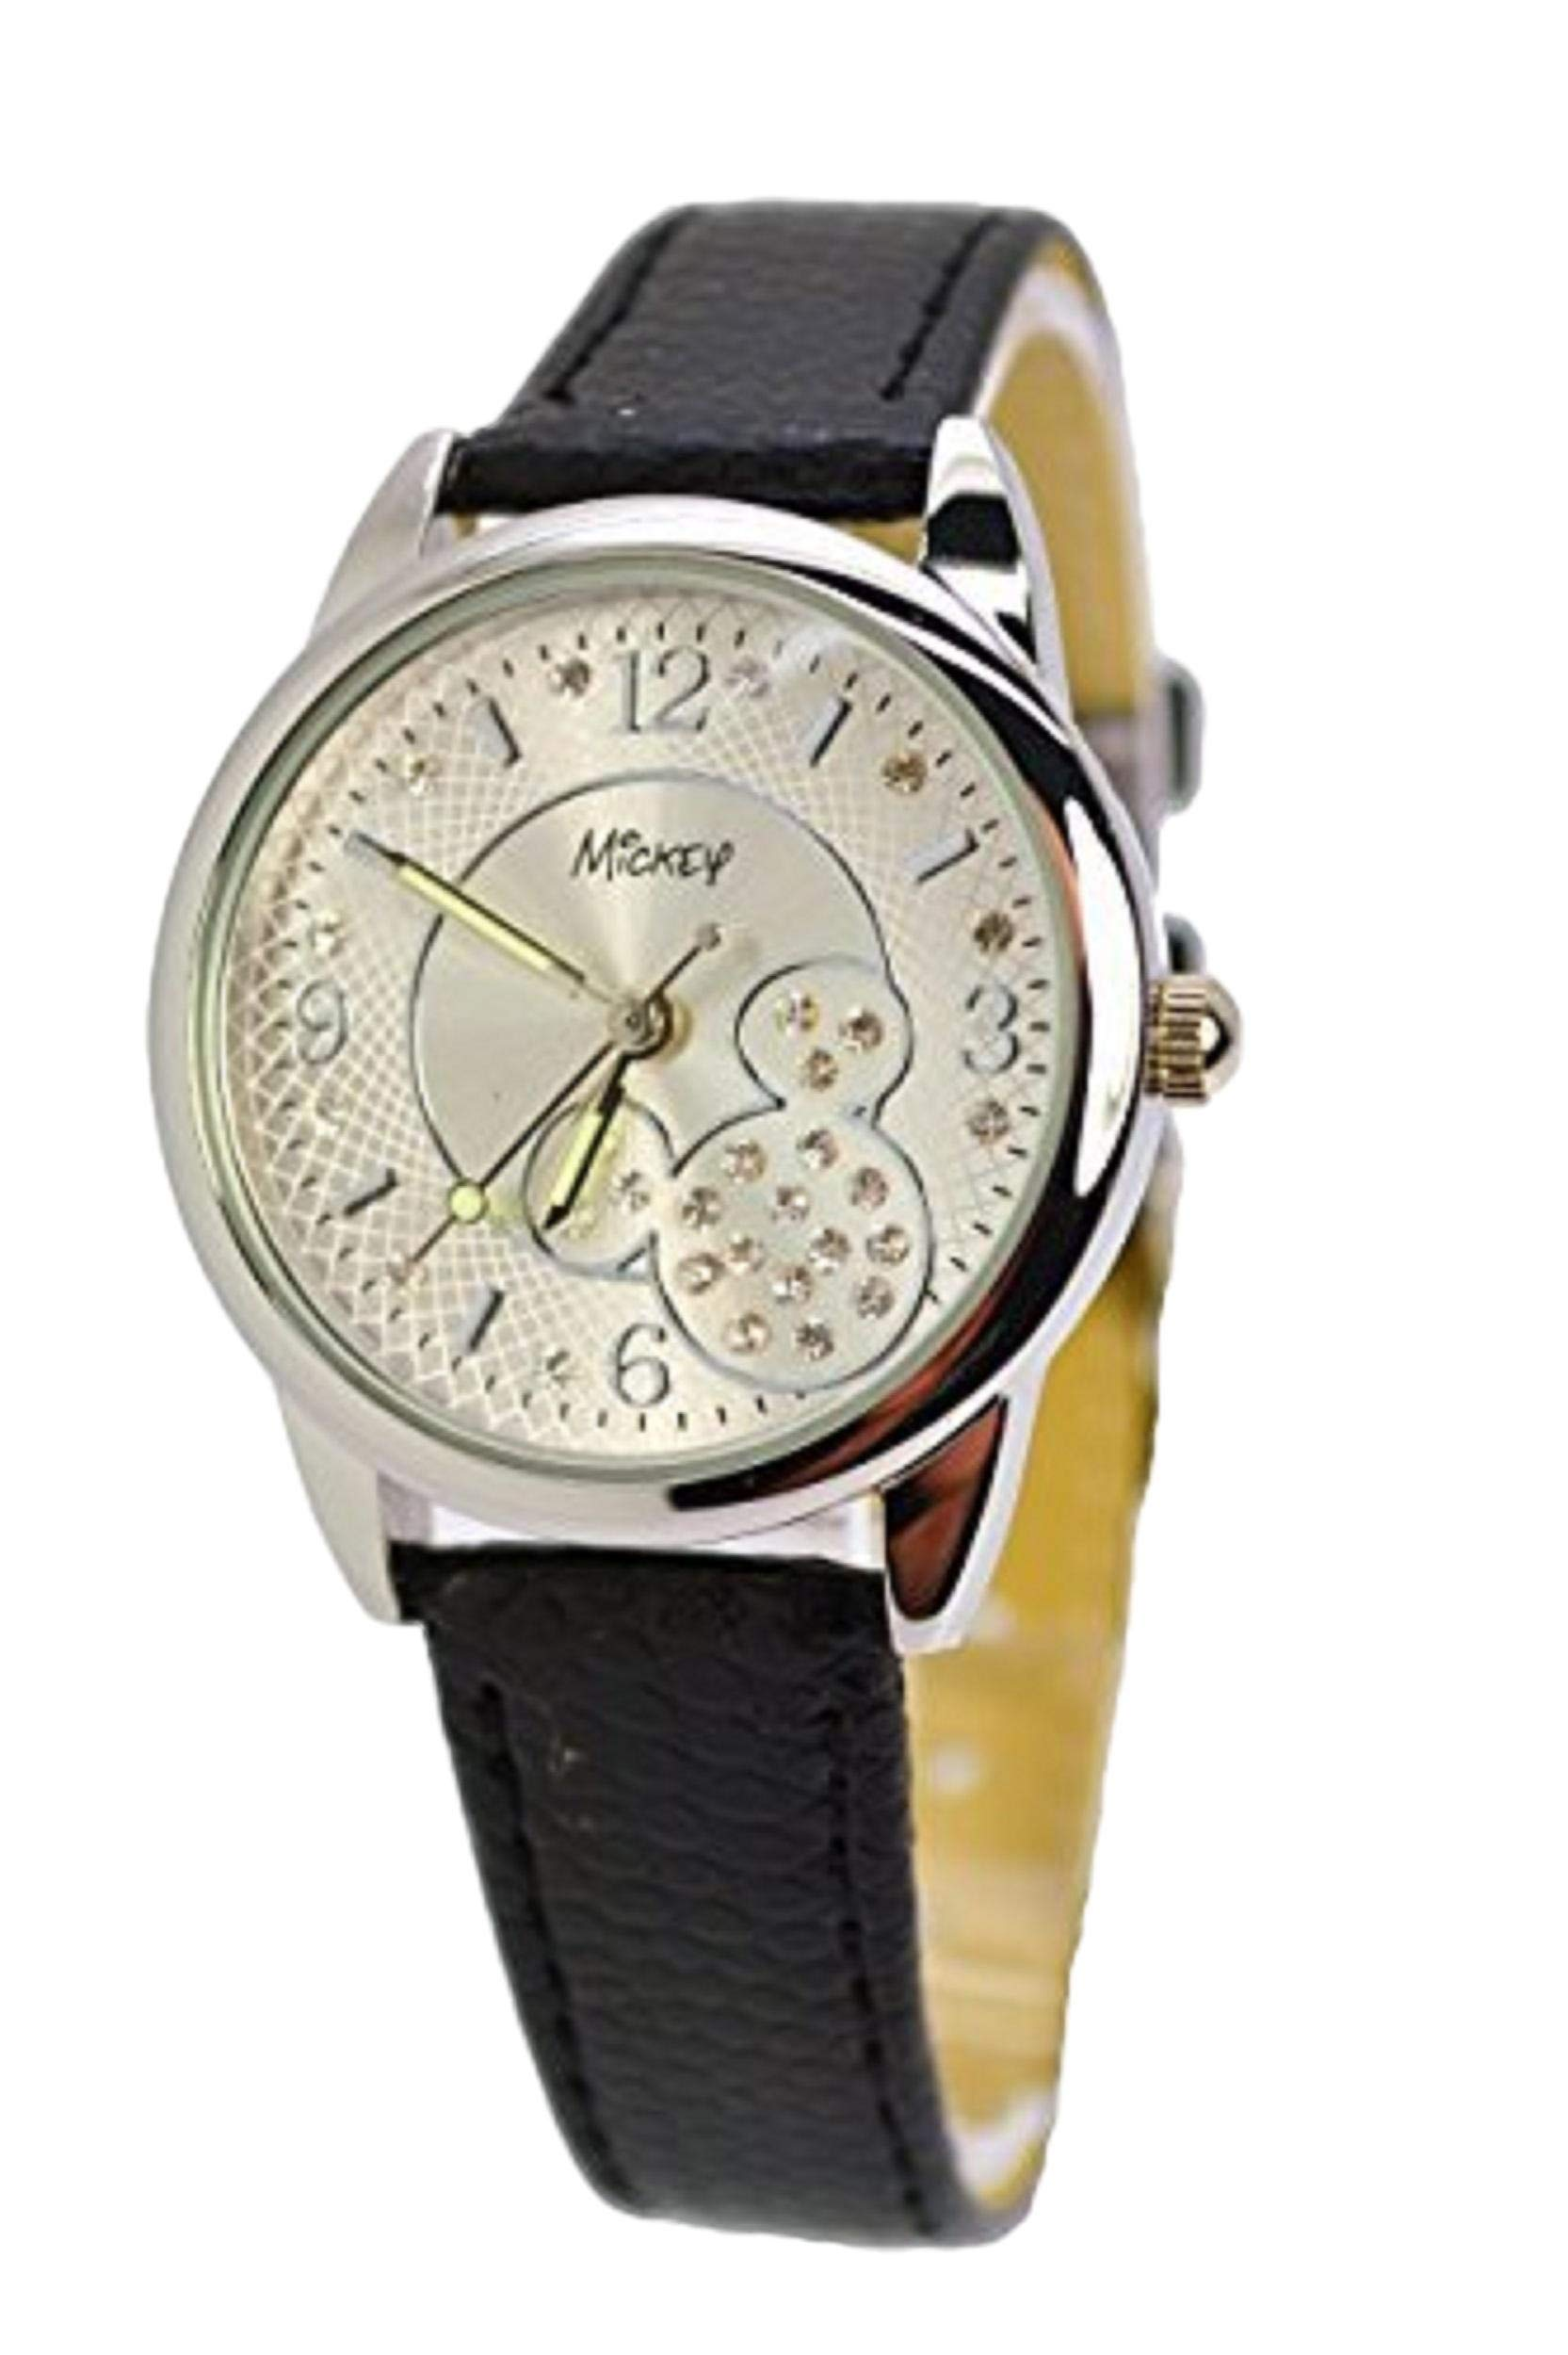 Disney Modern Watch for Girls w/Australian Crystals Mickey Mouse.Analog Large Display. (1) by Disney